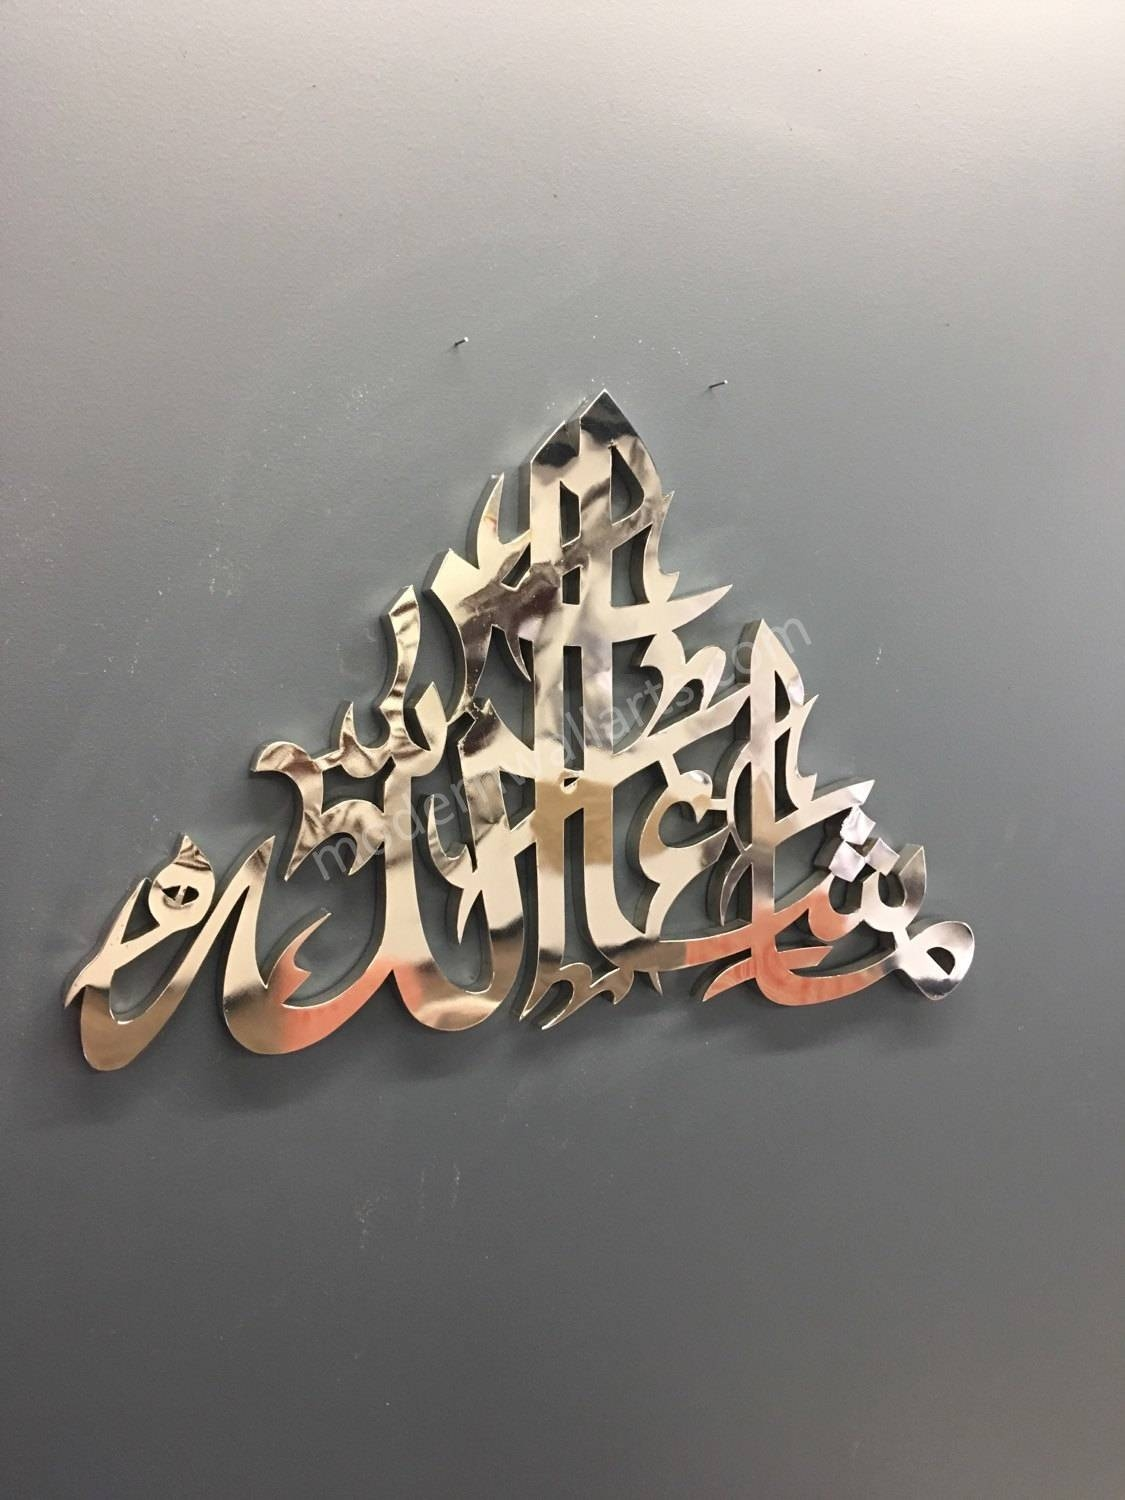 Stainless Steel Triangular Mashallah Modern Islamic Art – Modern In Most Up To Date Islamic Metal Wall Art (View 12 of 20)